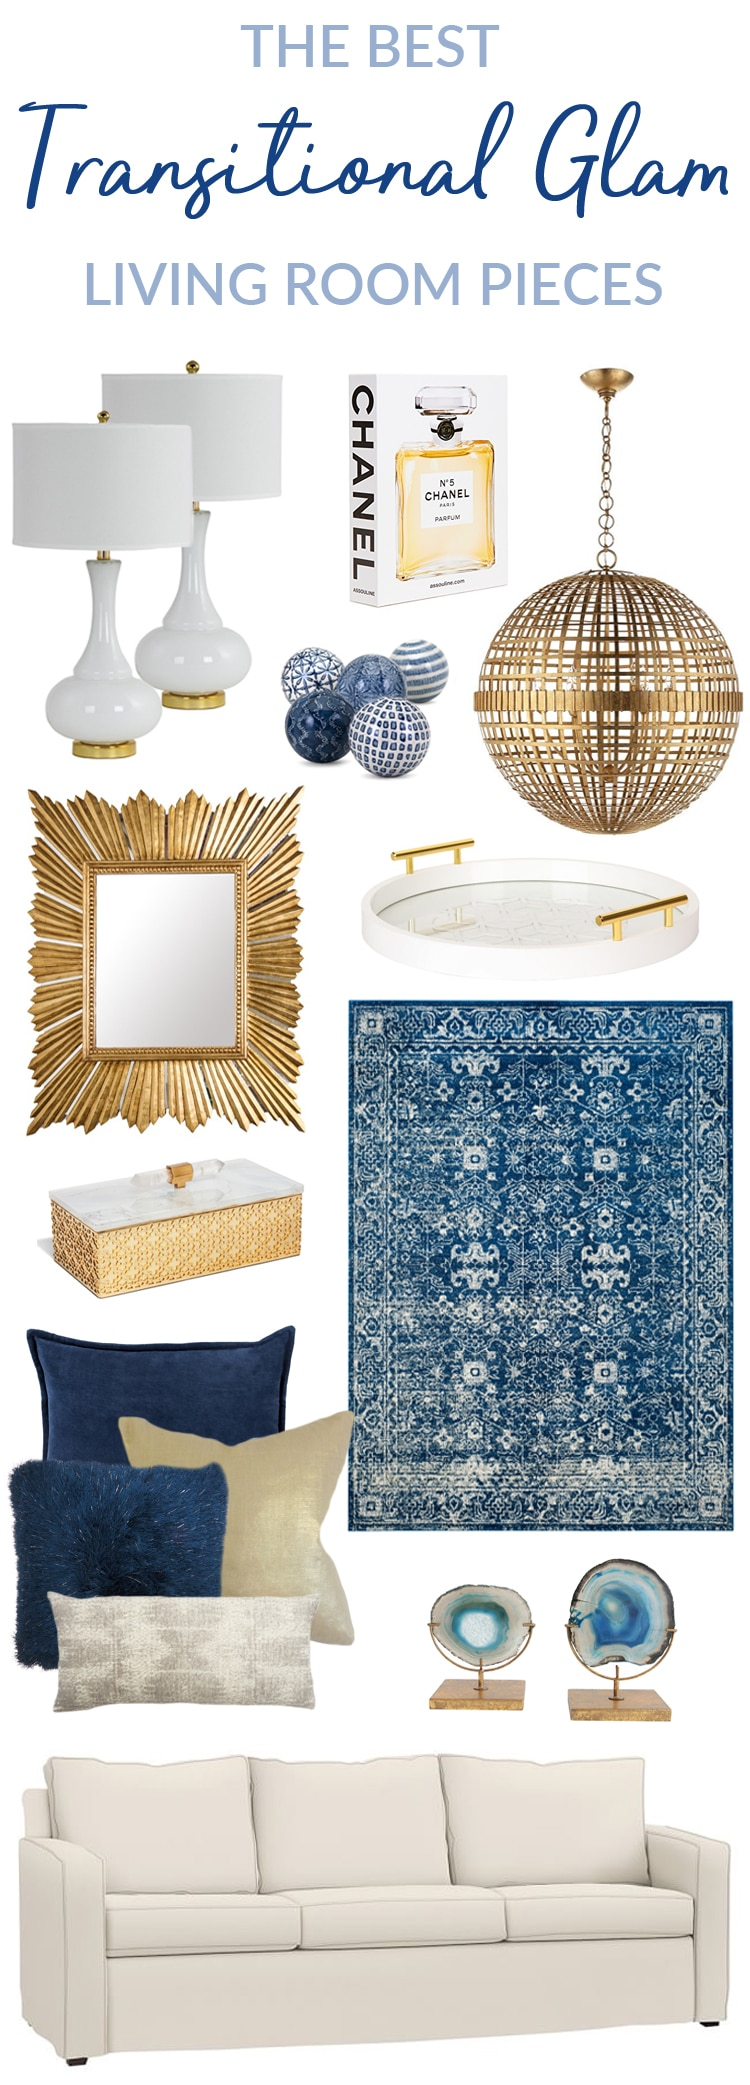 See the BEST Transitional Glam Living Room Pieces! These pieces will update your decor instantly. If you love traditional meets contemporary style, metallics, gold, white and blue then these decor ideas are for you!